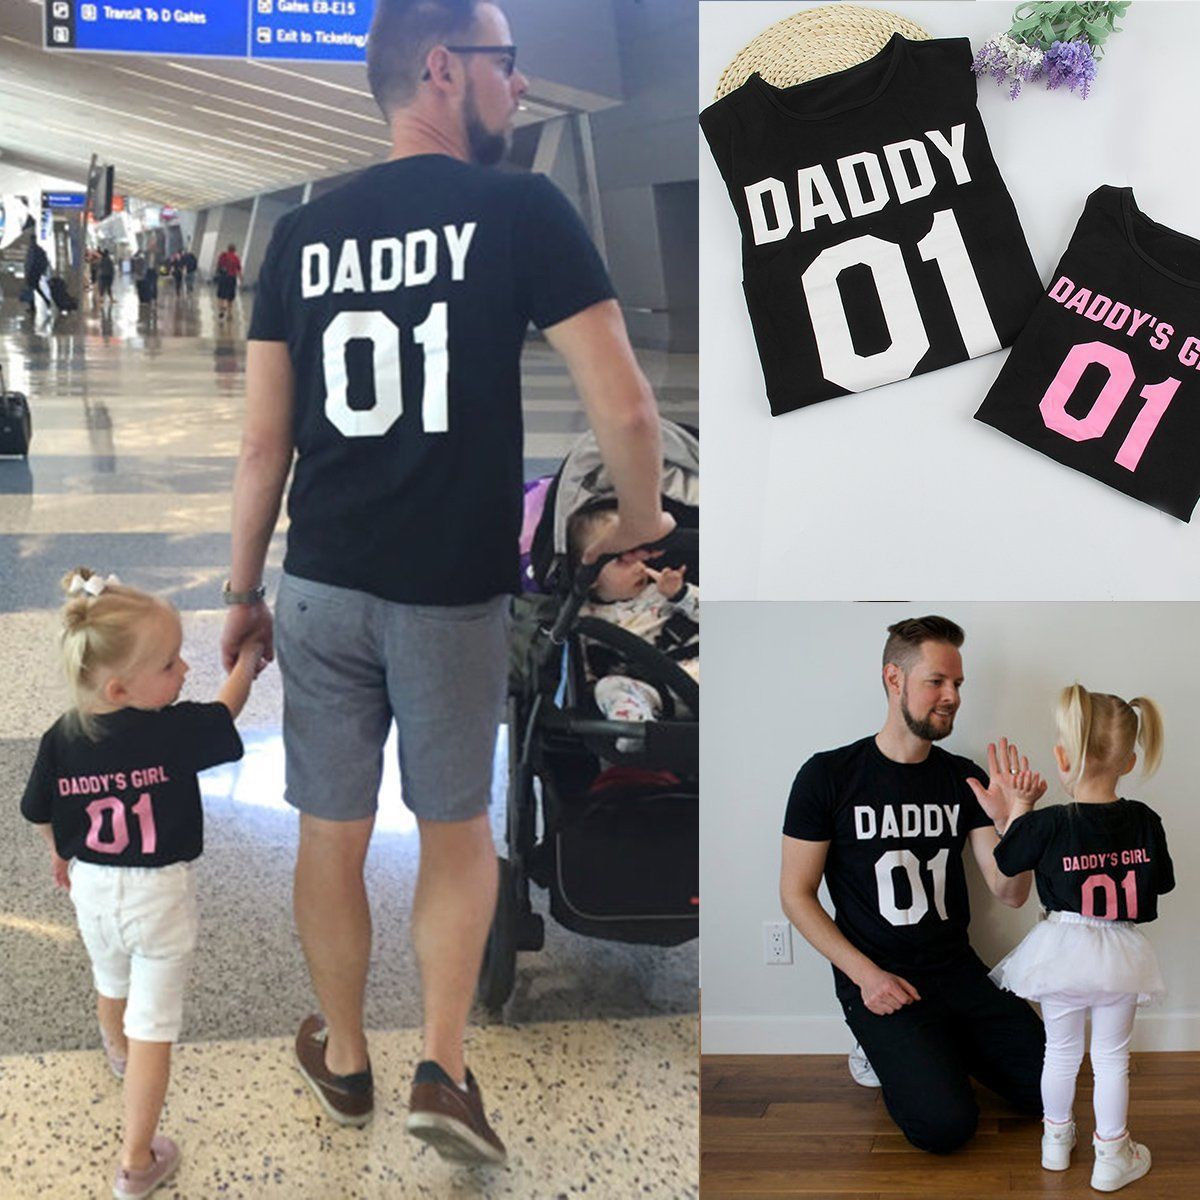 55830da5 2017 Family T-Shirts DADDY & DADDY'S GIRL Father & Daughter T shirt Tops  Family